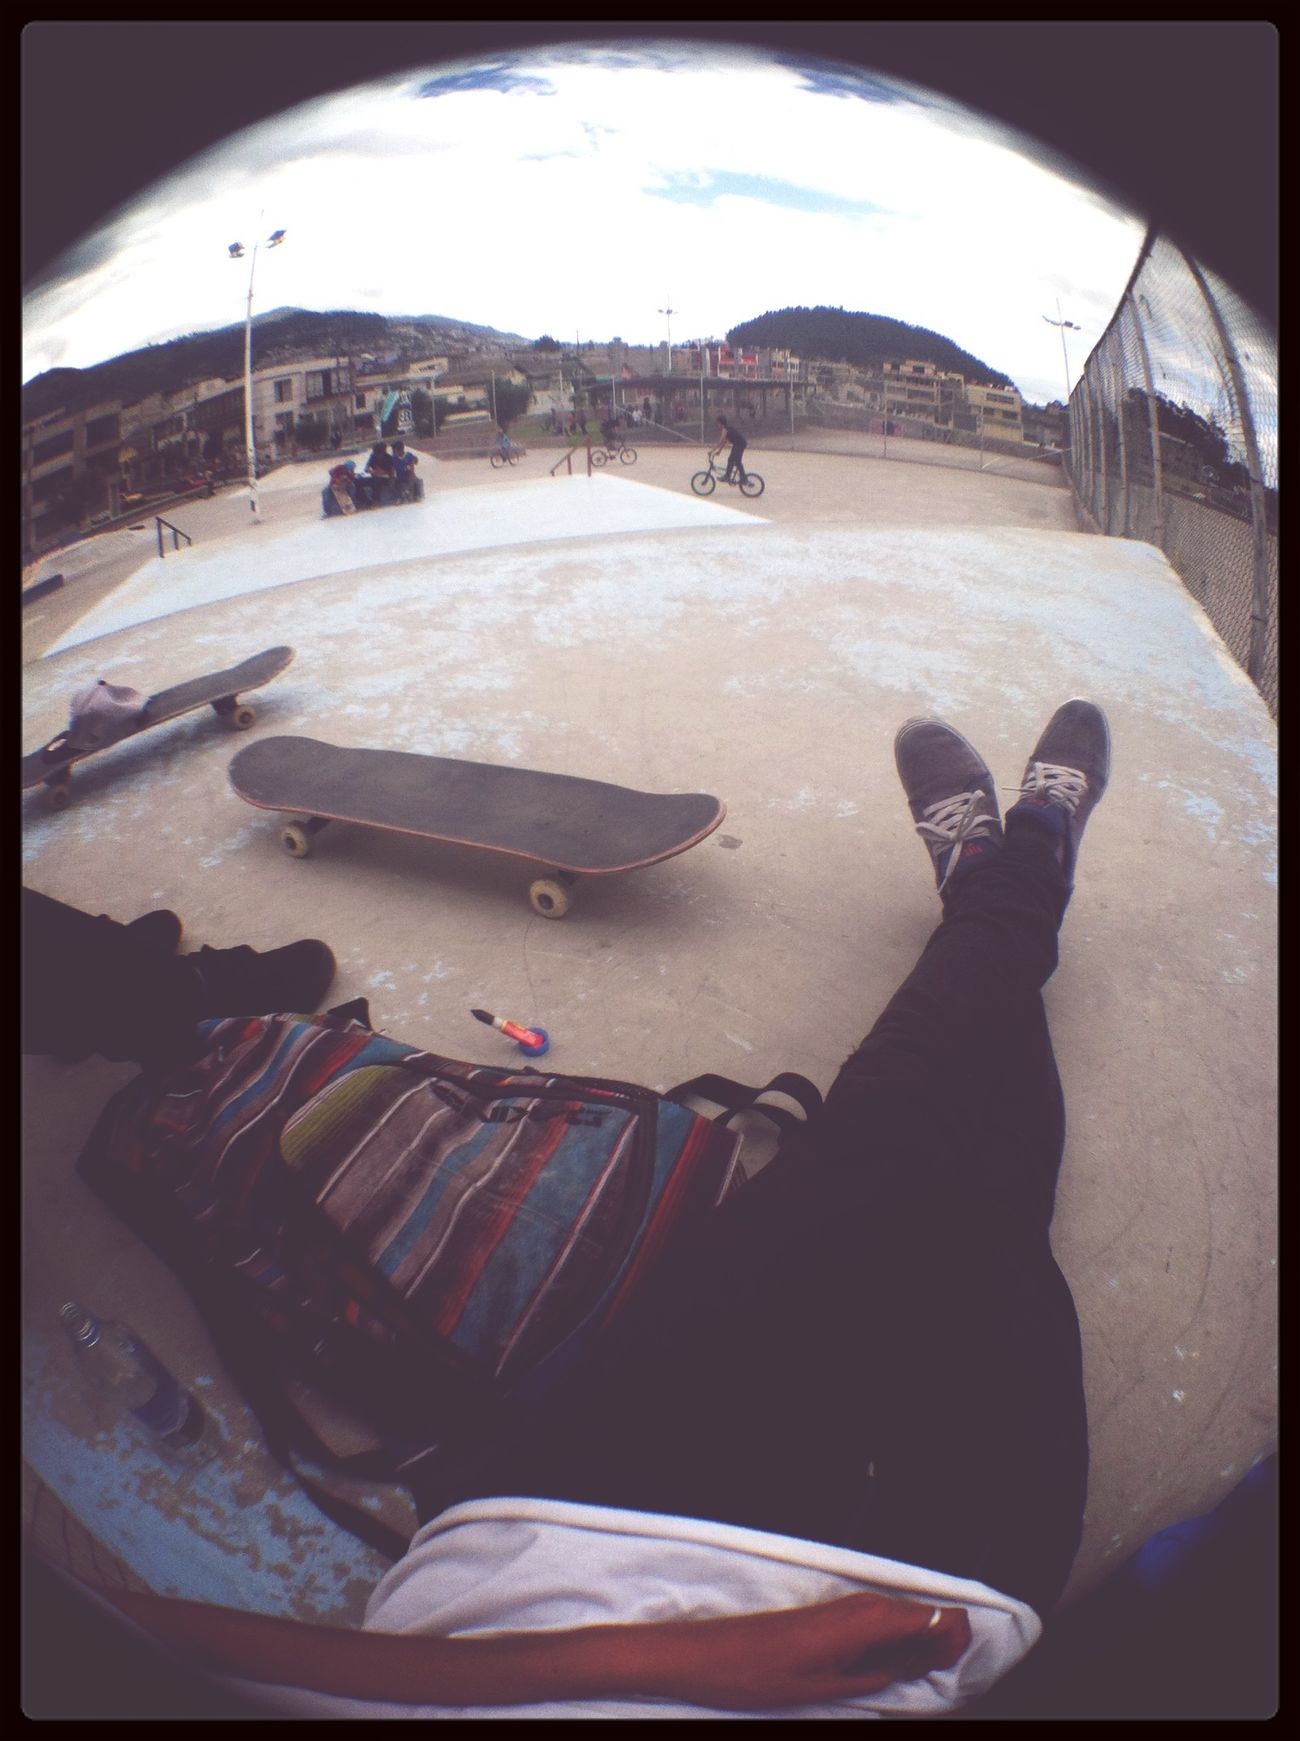 Skatelife Skateboarding Skatepark Life today here